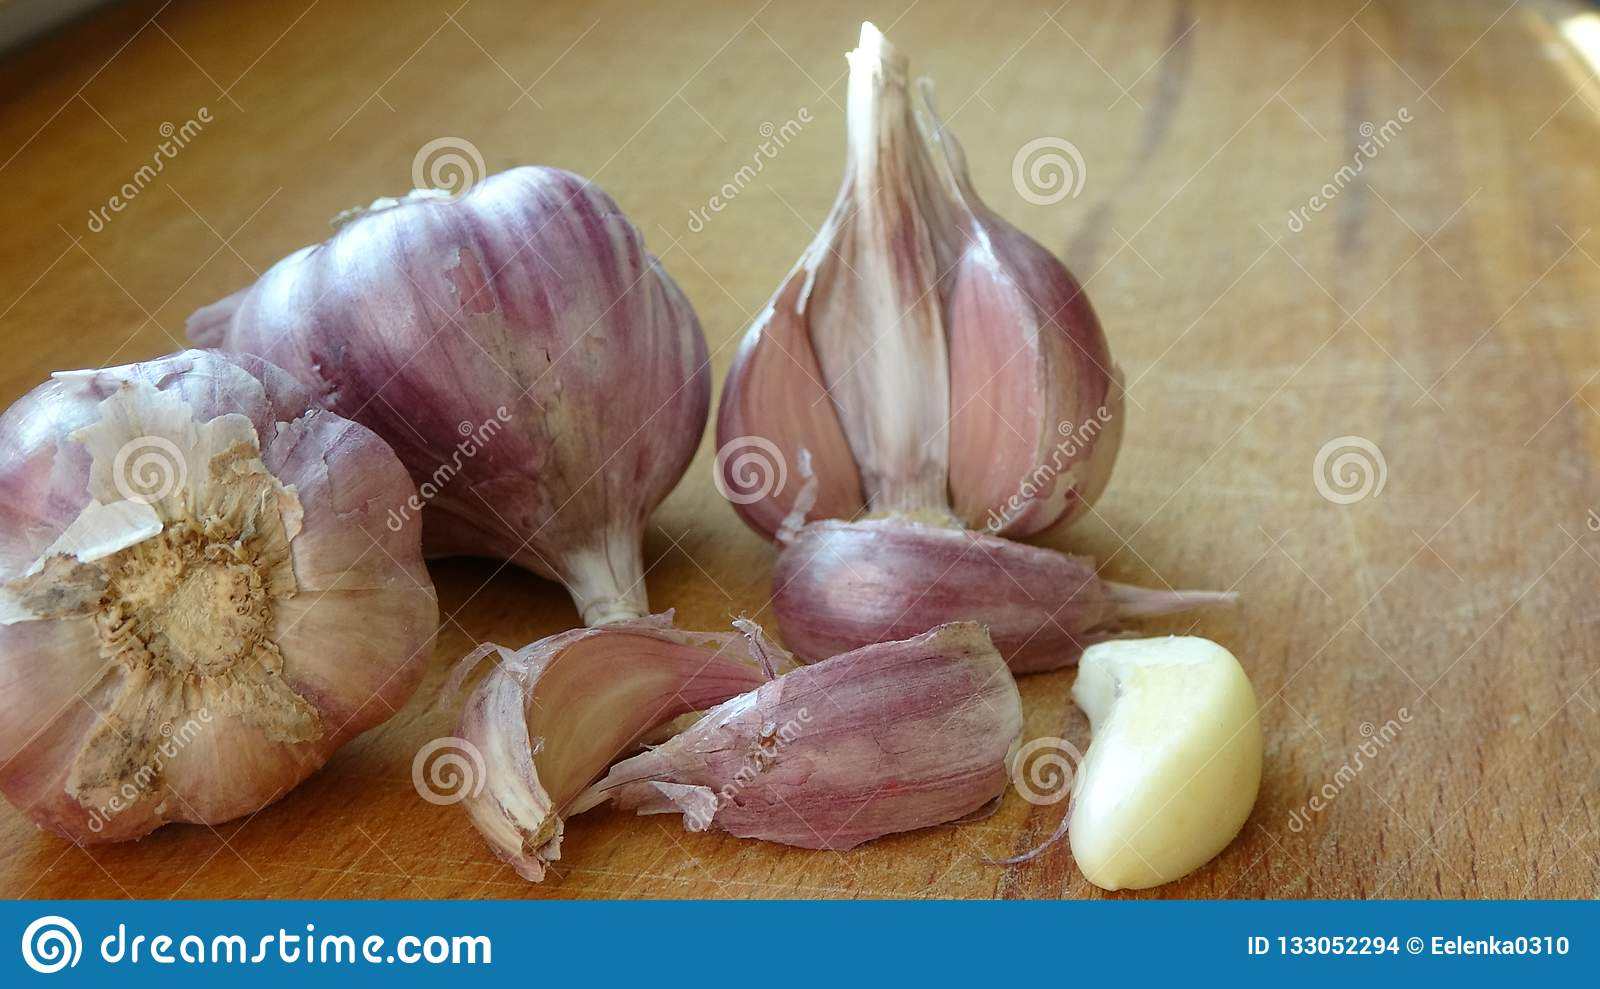 Heads Of Garlic On A Wooden Board Lie On The Table  Whole